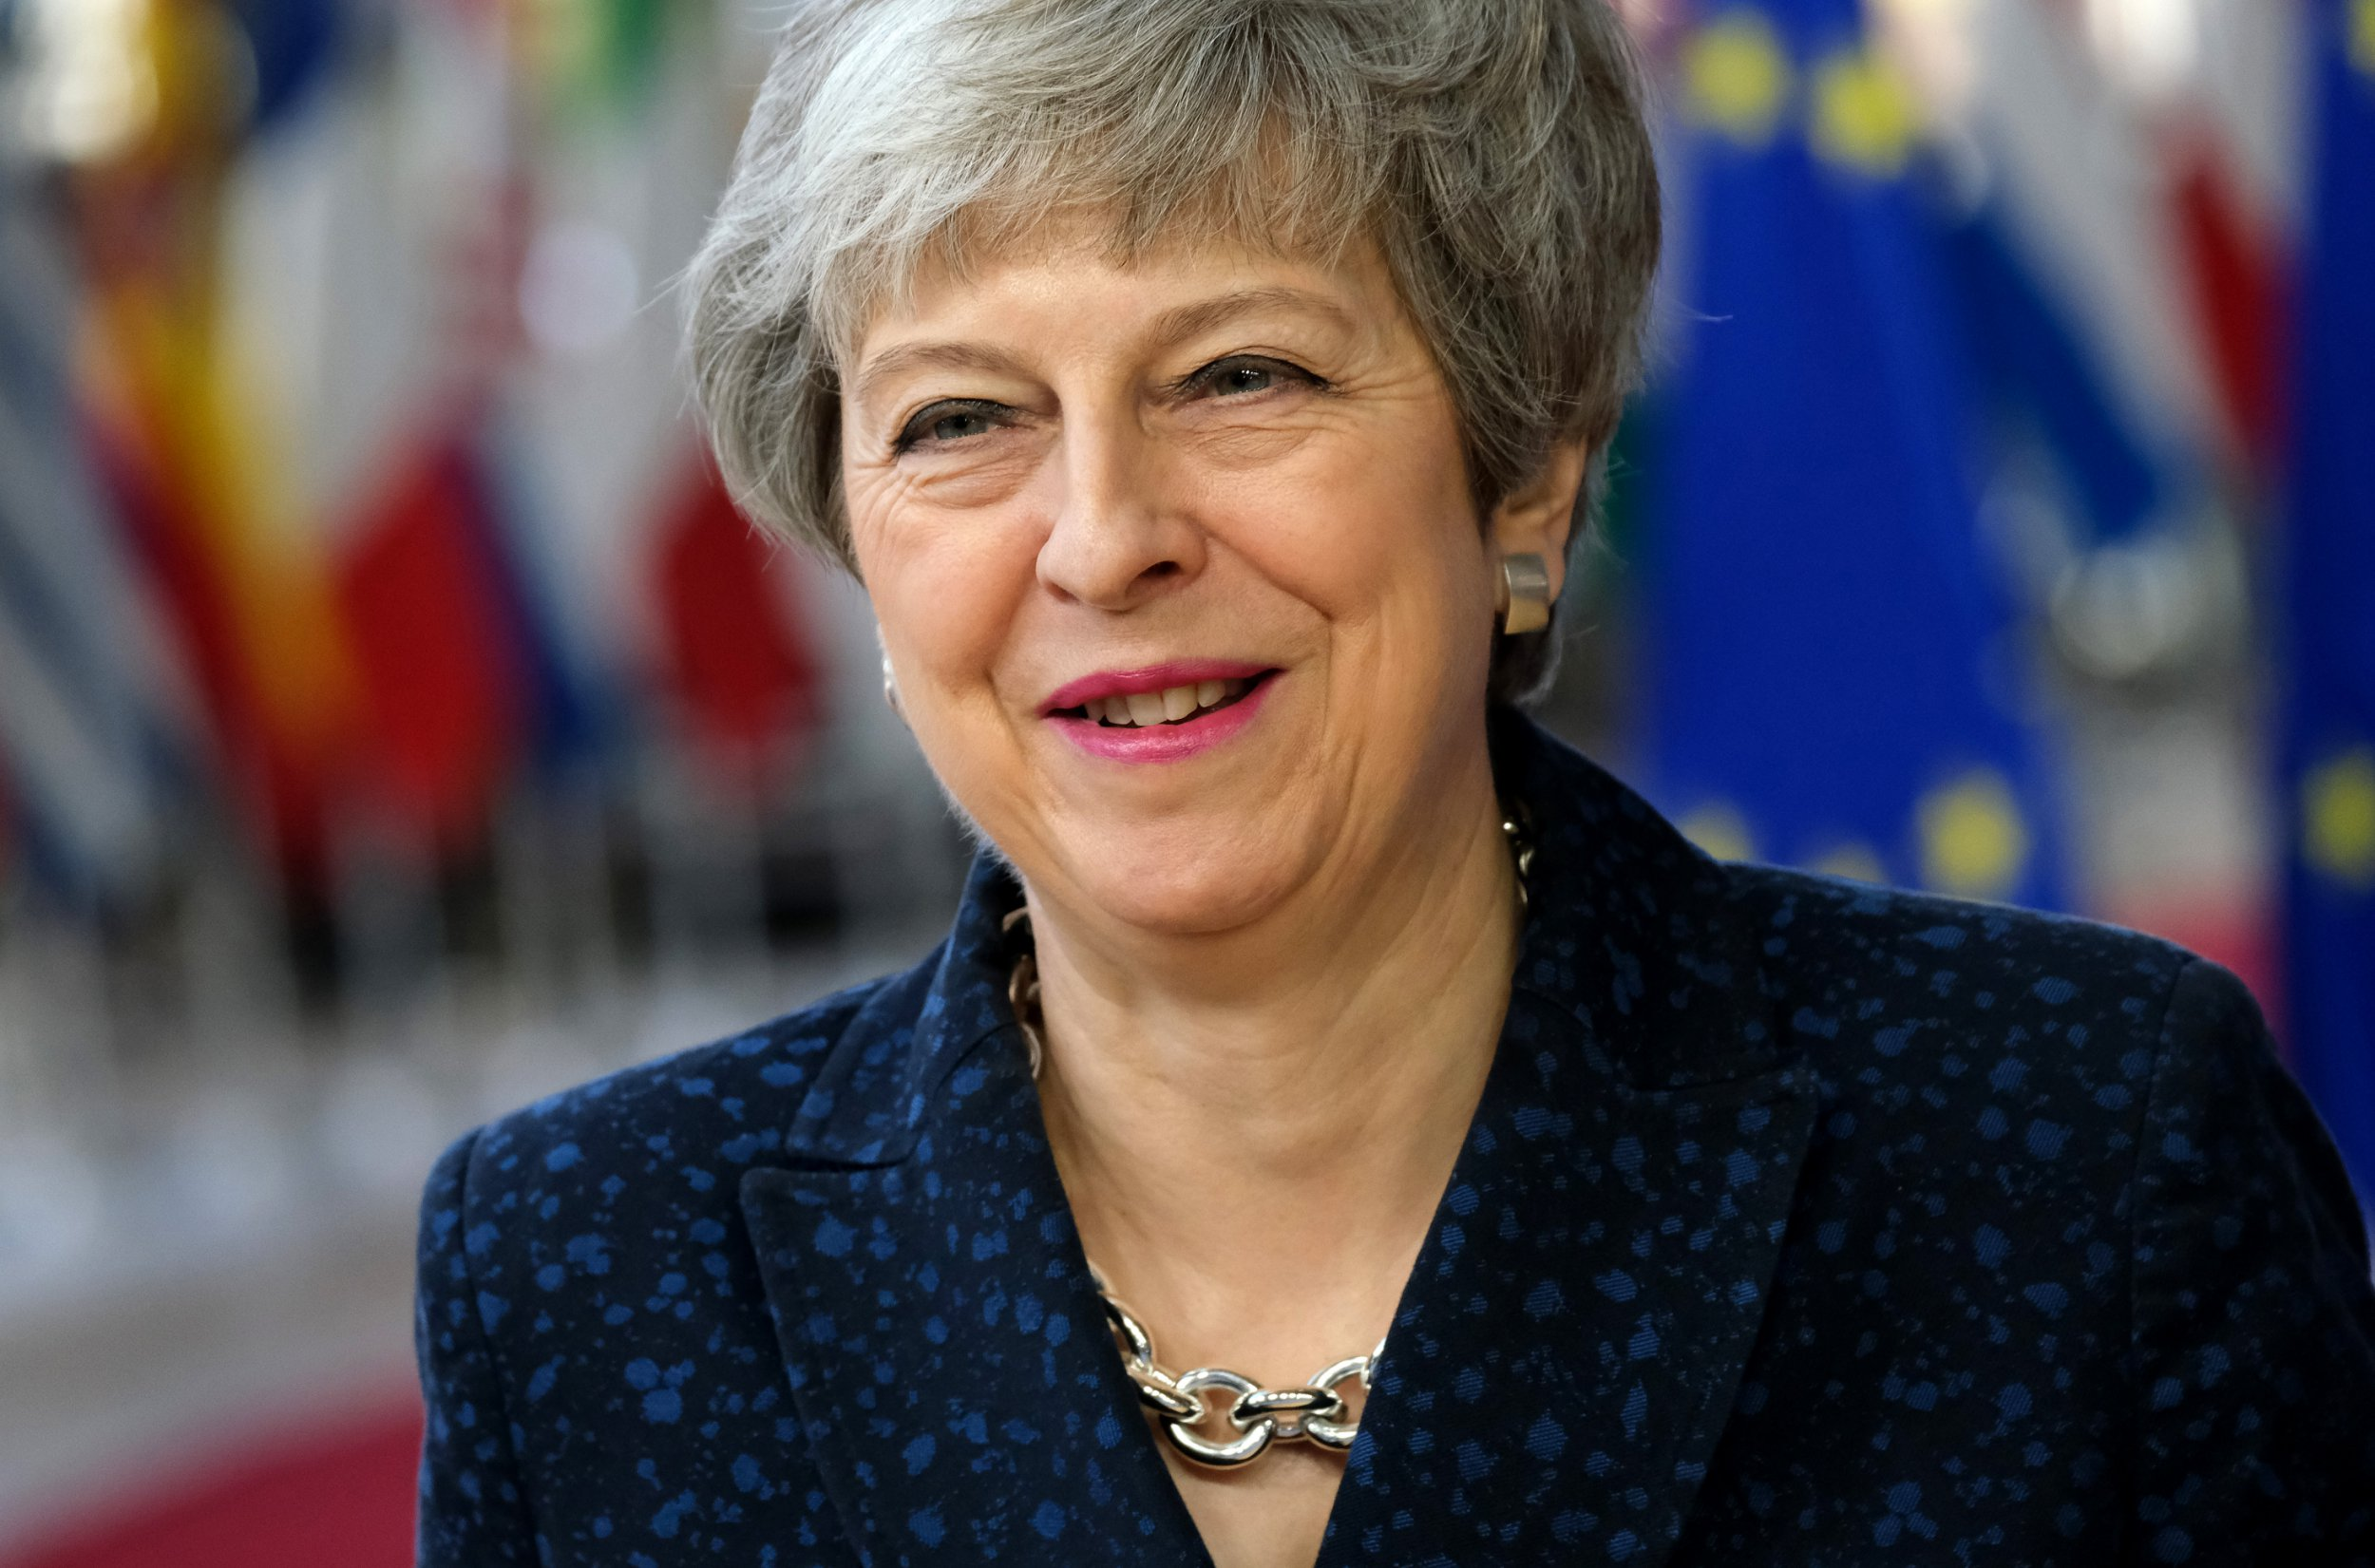 BRUSSELS, BELGIUM - MARCH 21: British Prime Minister Theresa May arrives for a two-day summit of European Union leaders on March 21, 2019 in Brussels, Belgium. Leaders will discuss May's request for an extension of the deadline for the United Kingdom's departure from the EU, or Brexit. European Council President Donald Tusk said yesterday that he can see member states agreeing to a short extension beyond March 29, though he has coupled an extension to the British Parliament passing Theresa May's Brexit agreement first. (Photo by Sean Gallup/Getty Images)